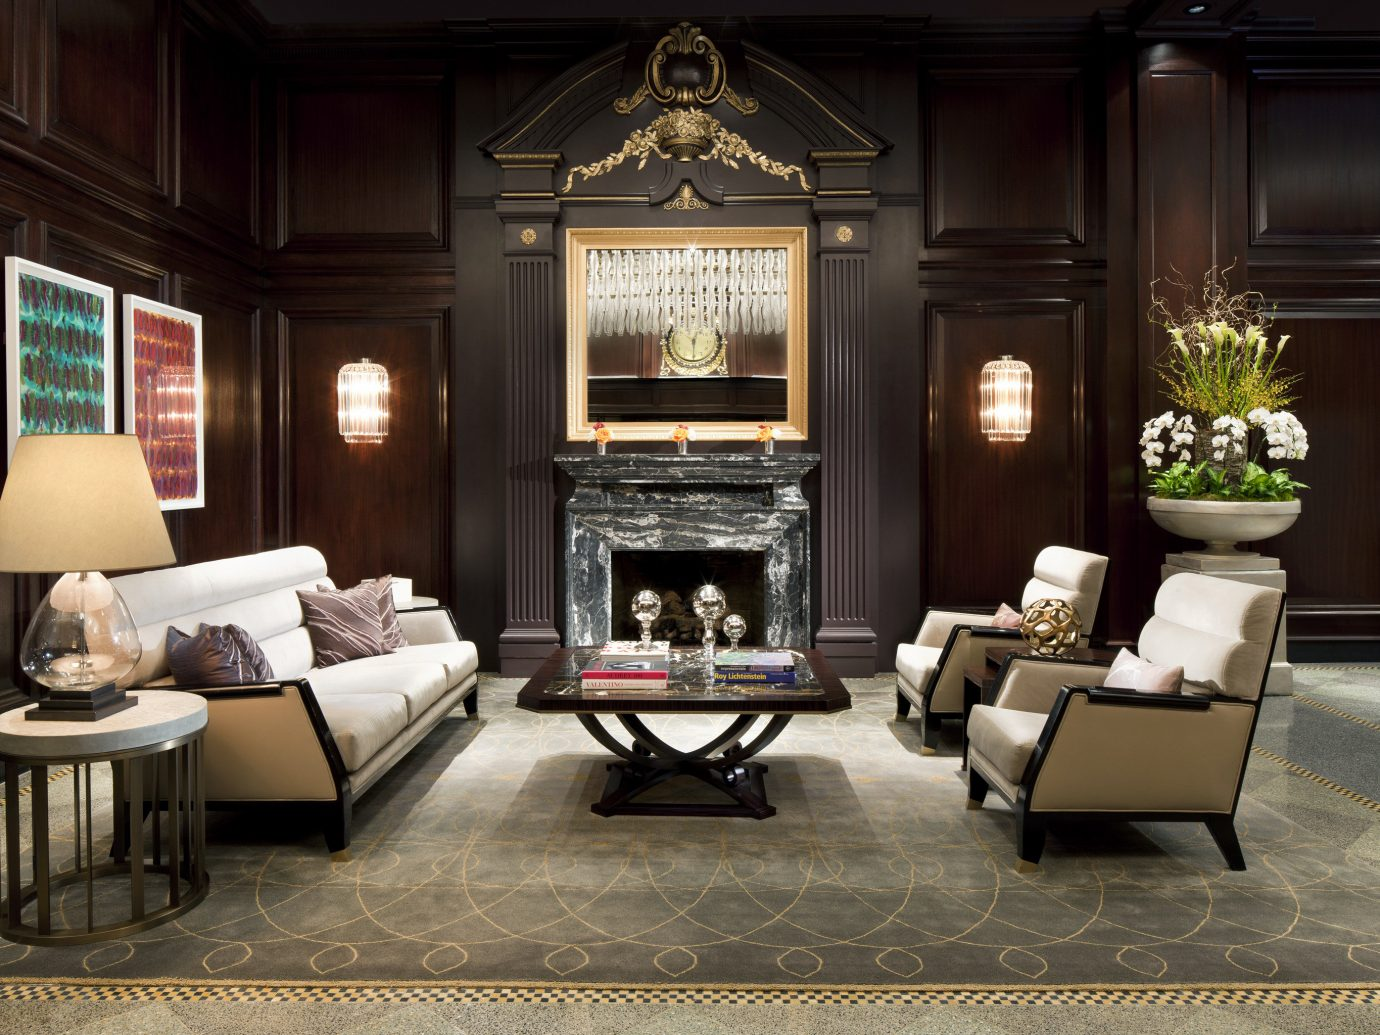 City Classic Fireplace Hotels Lobby Lounge Trip Ideas floor indoor Living living room room property home estate dining room interior design hardwood furniture lighting wood mansion Design Suite table flooring hearth